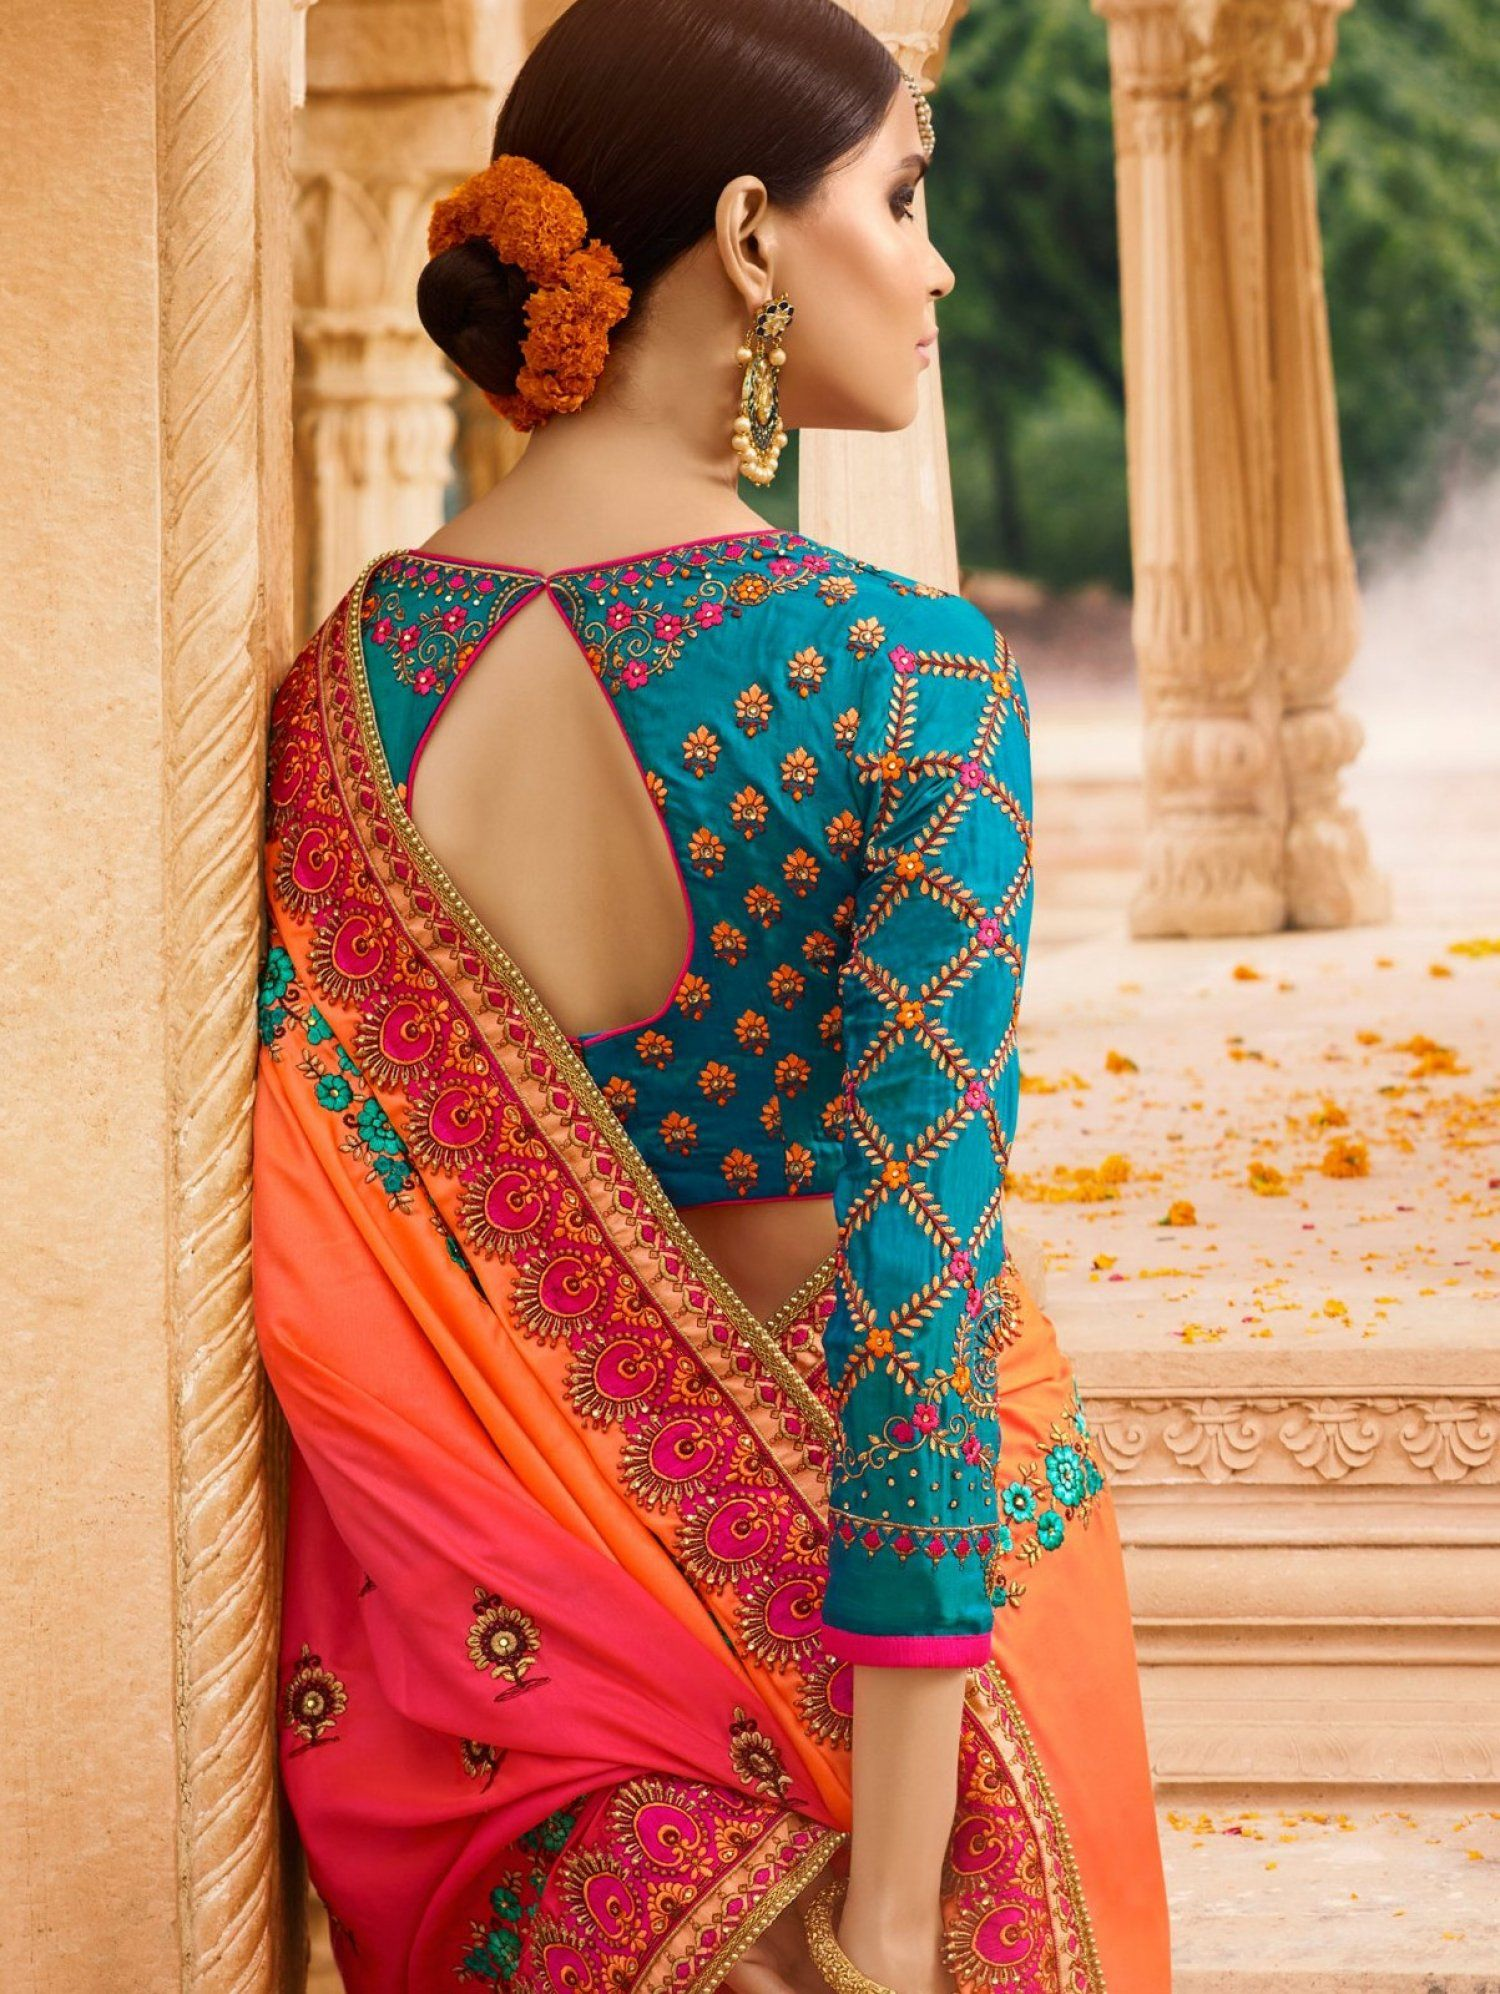 Engagement pattu saree images orange and blue silk saree with resham embroidery work  embroidery